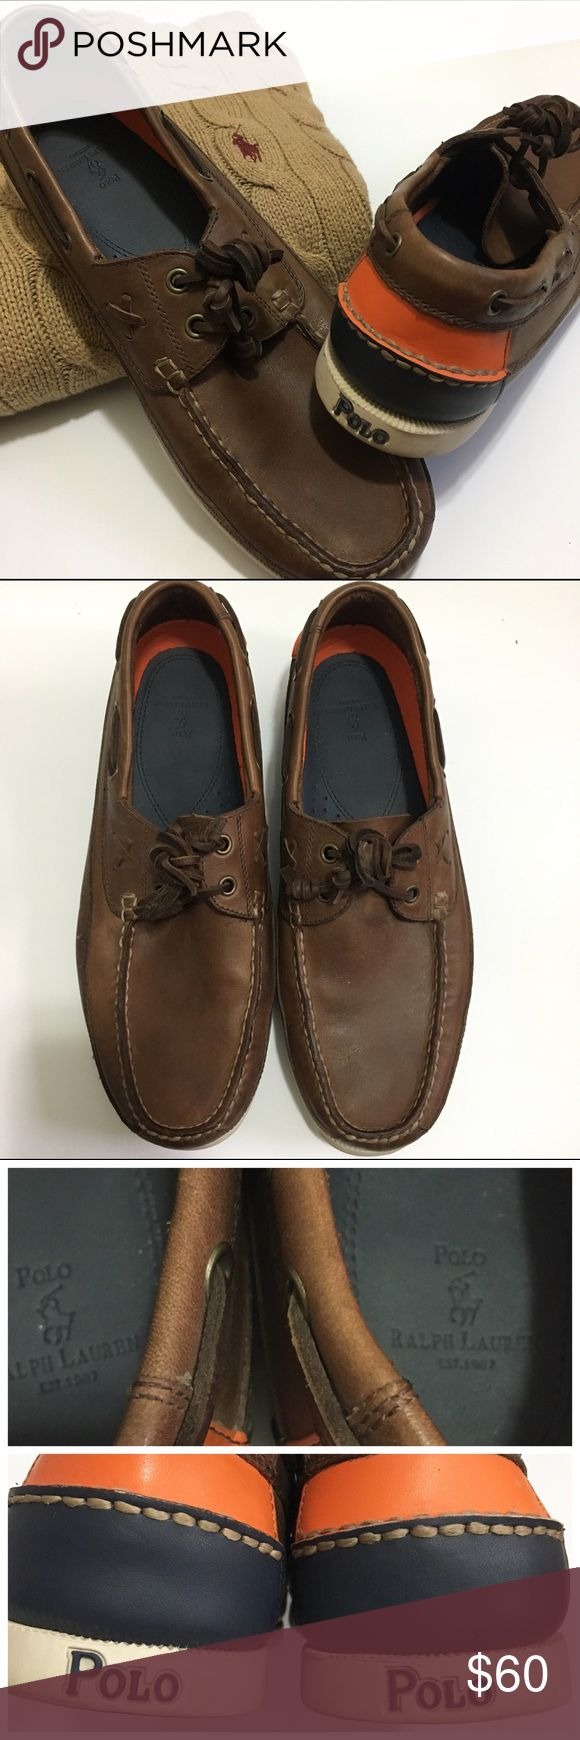 Polo by Ralph Lauren leather boat shoes Polo by Ralph Lauren leather boat shoes. Leather laces. Orange and navy accent around heel. Gently used; main signs of wear include dirt around rubber sole and on bottom of sole, and minor light scratches on upper. Polo by Ralph Lauren Shoes Boat Shoes